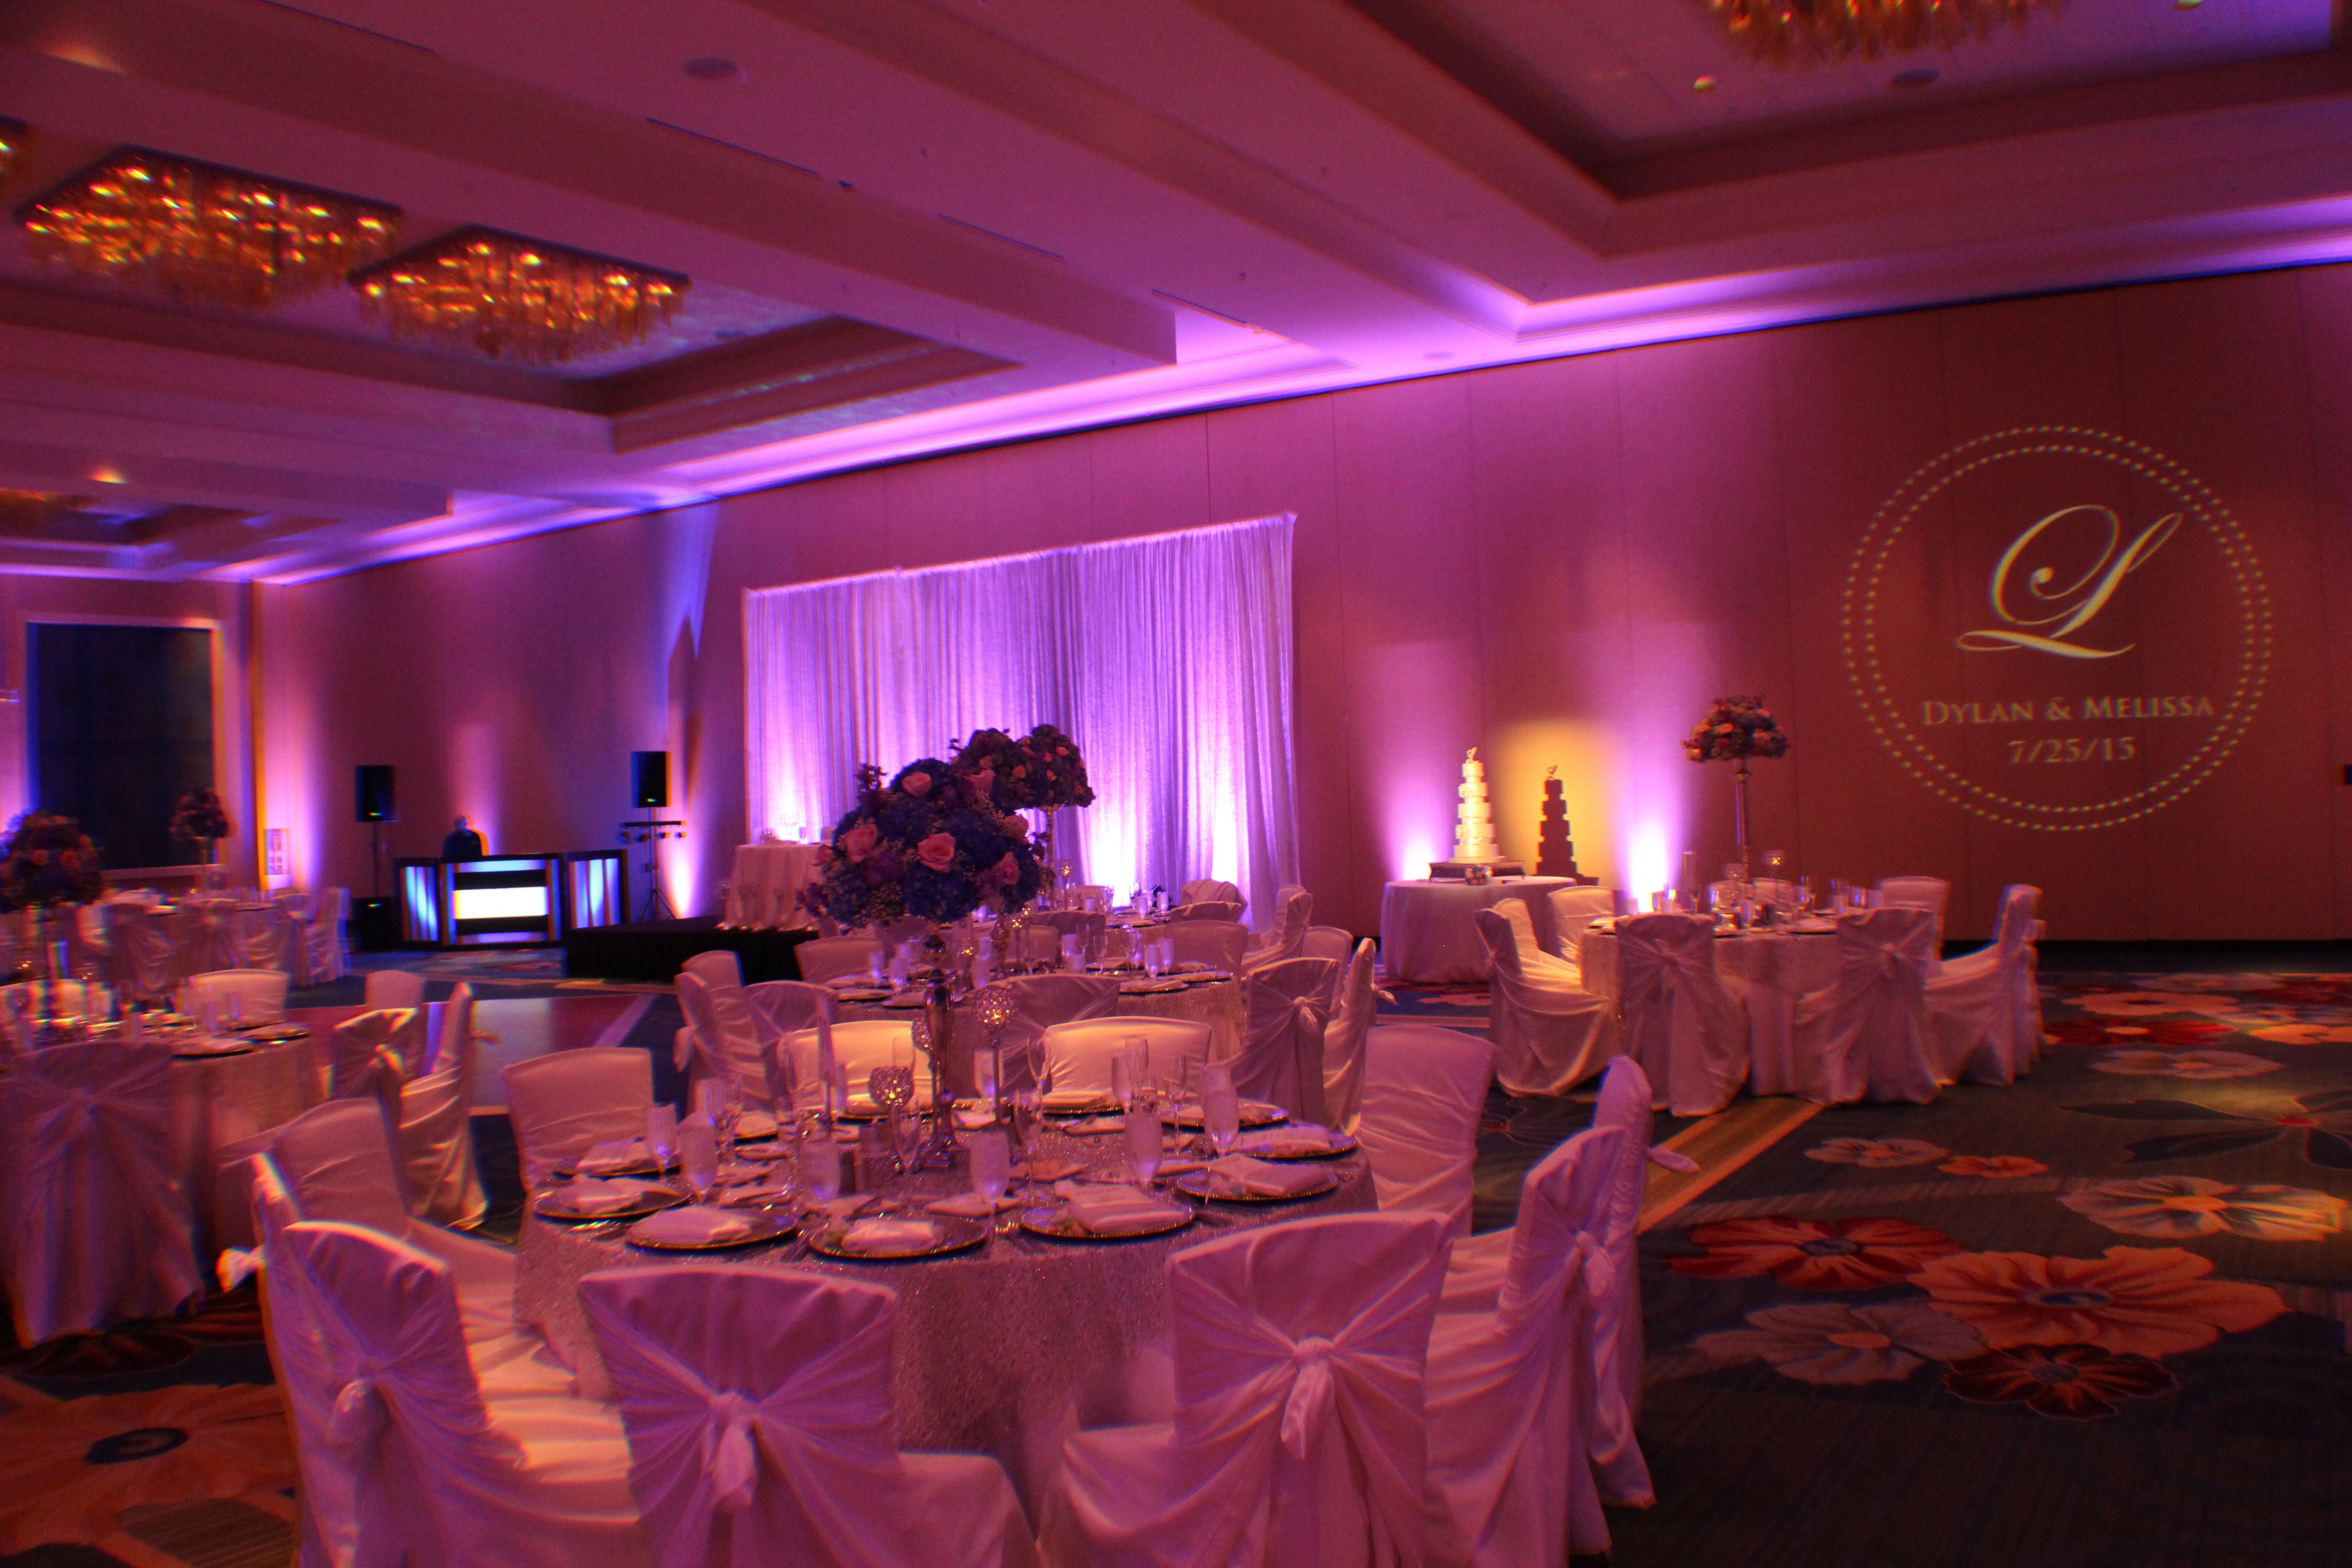 Hilton Orlando Wedding Lighting Options And Ideas Shown In Purple Is Key To An